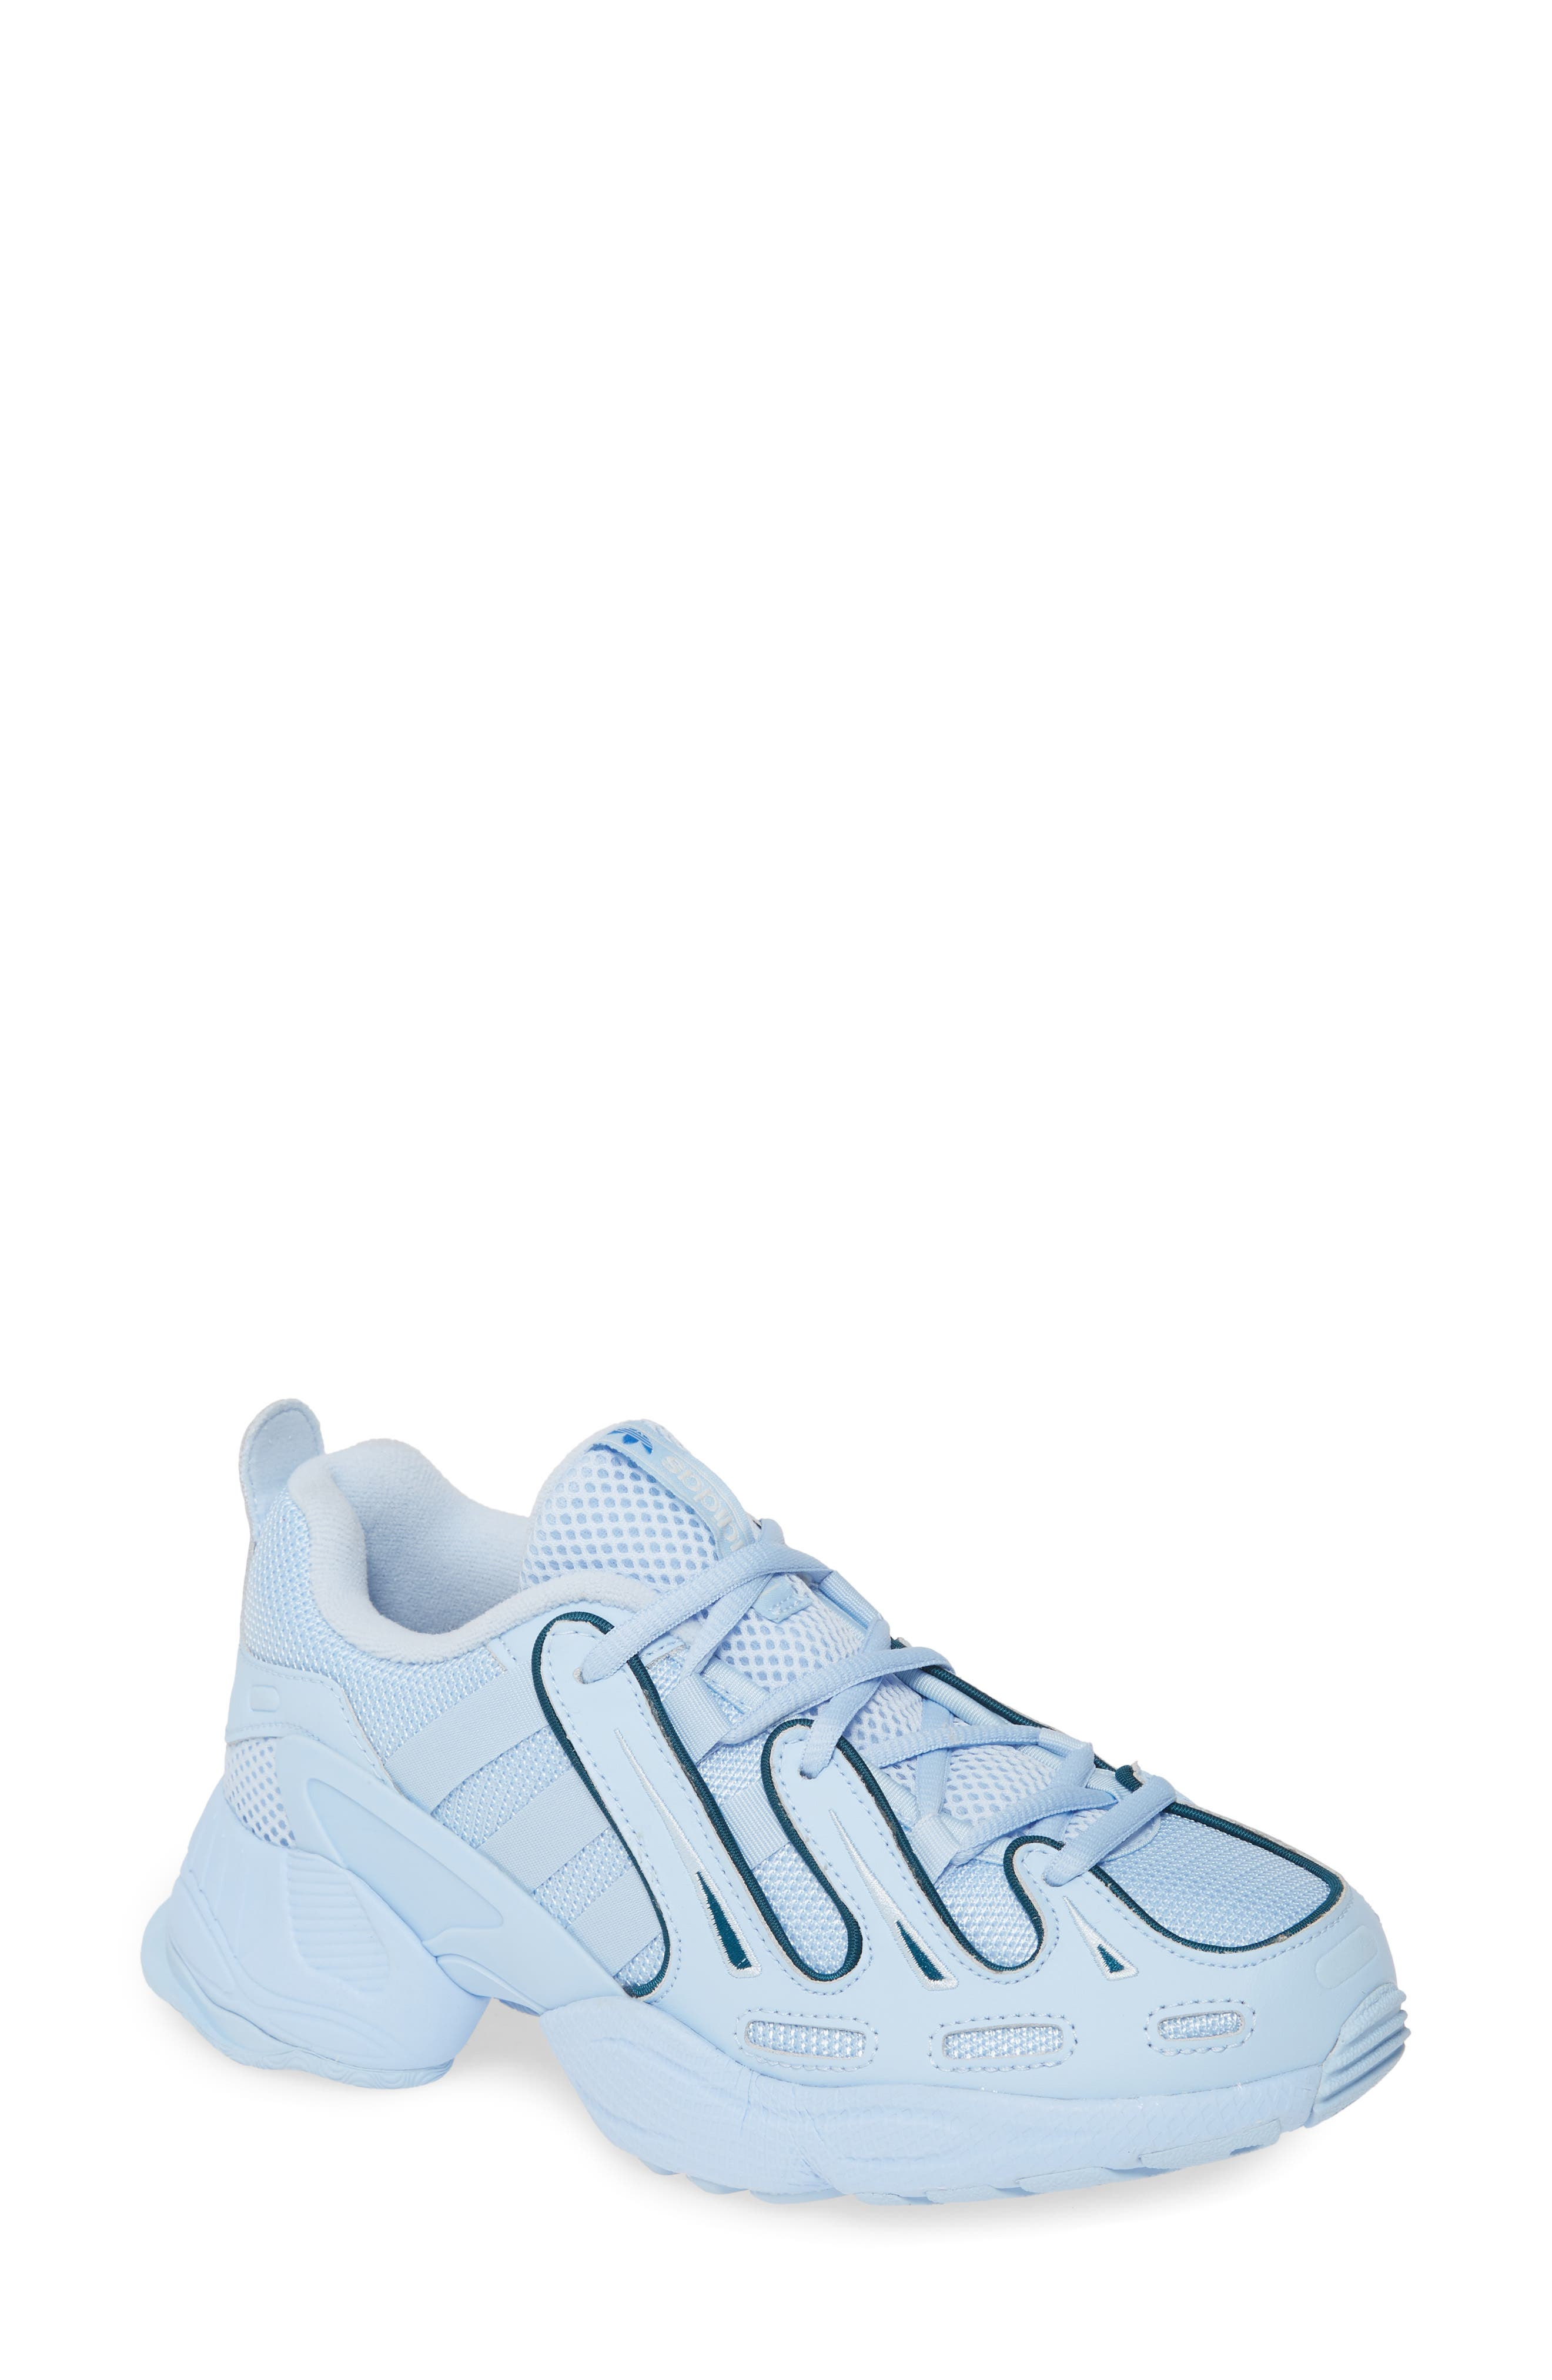 adidas GAZELLE 2018 19AW Suede Street Style Sneakers